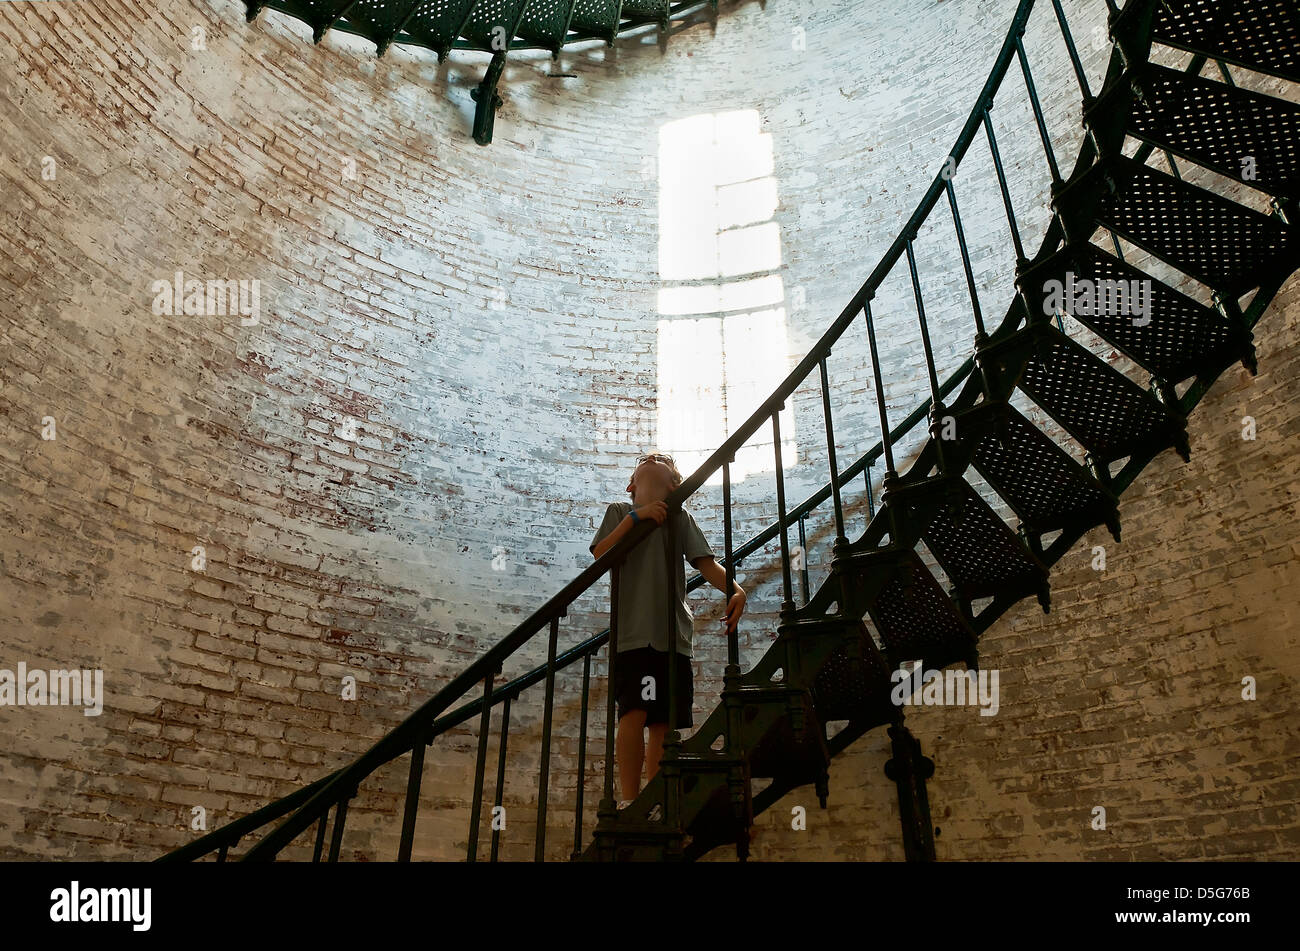 Boy marvels at the interior of a lighthouse, Corolla Lighthouse, Outer Banks, NC, North Carolina - Stock Image